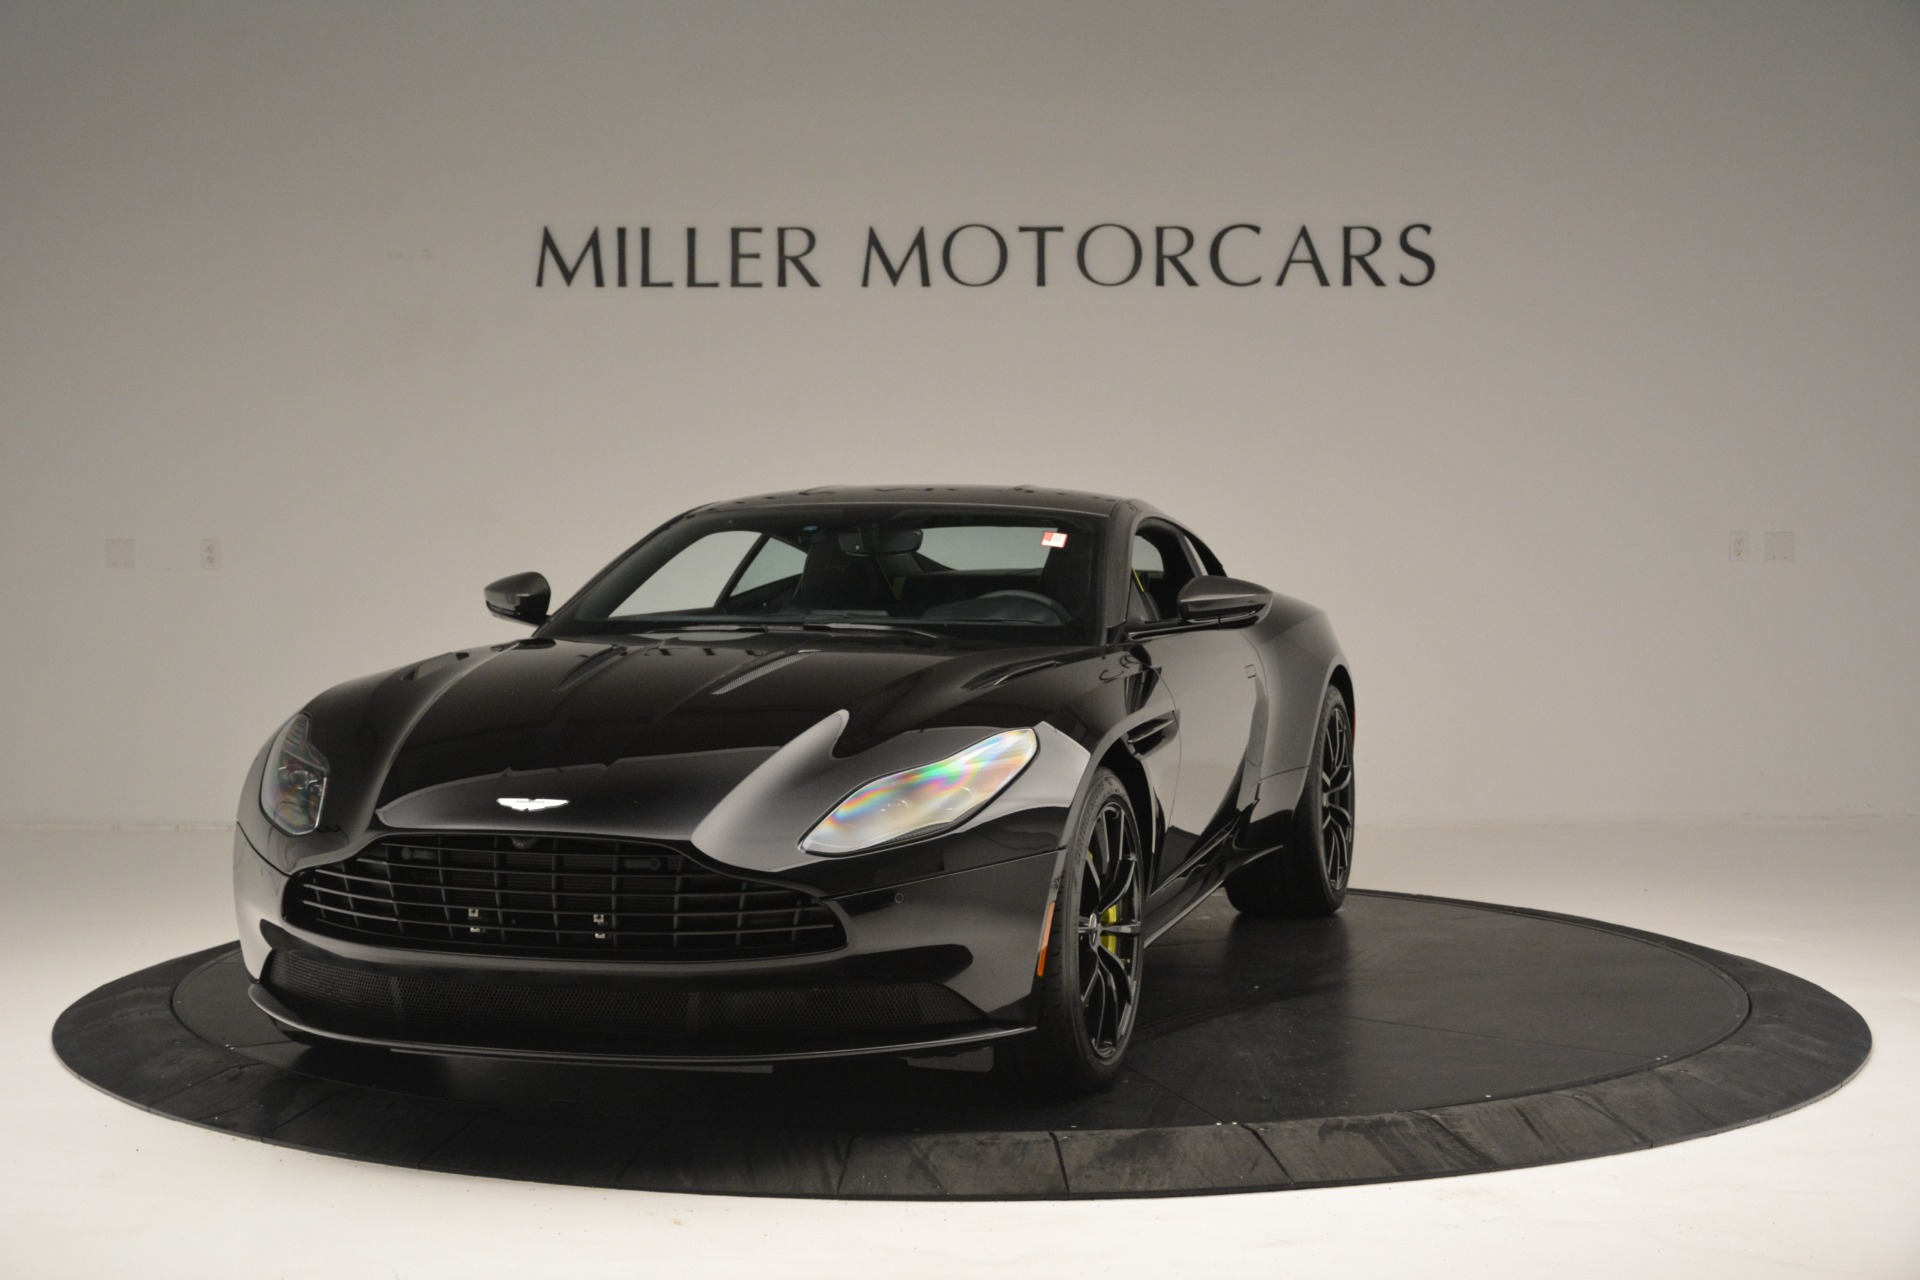 2019 aston martin db11 amr amr stock # a1302 for sale near greenwich